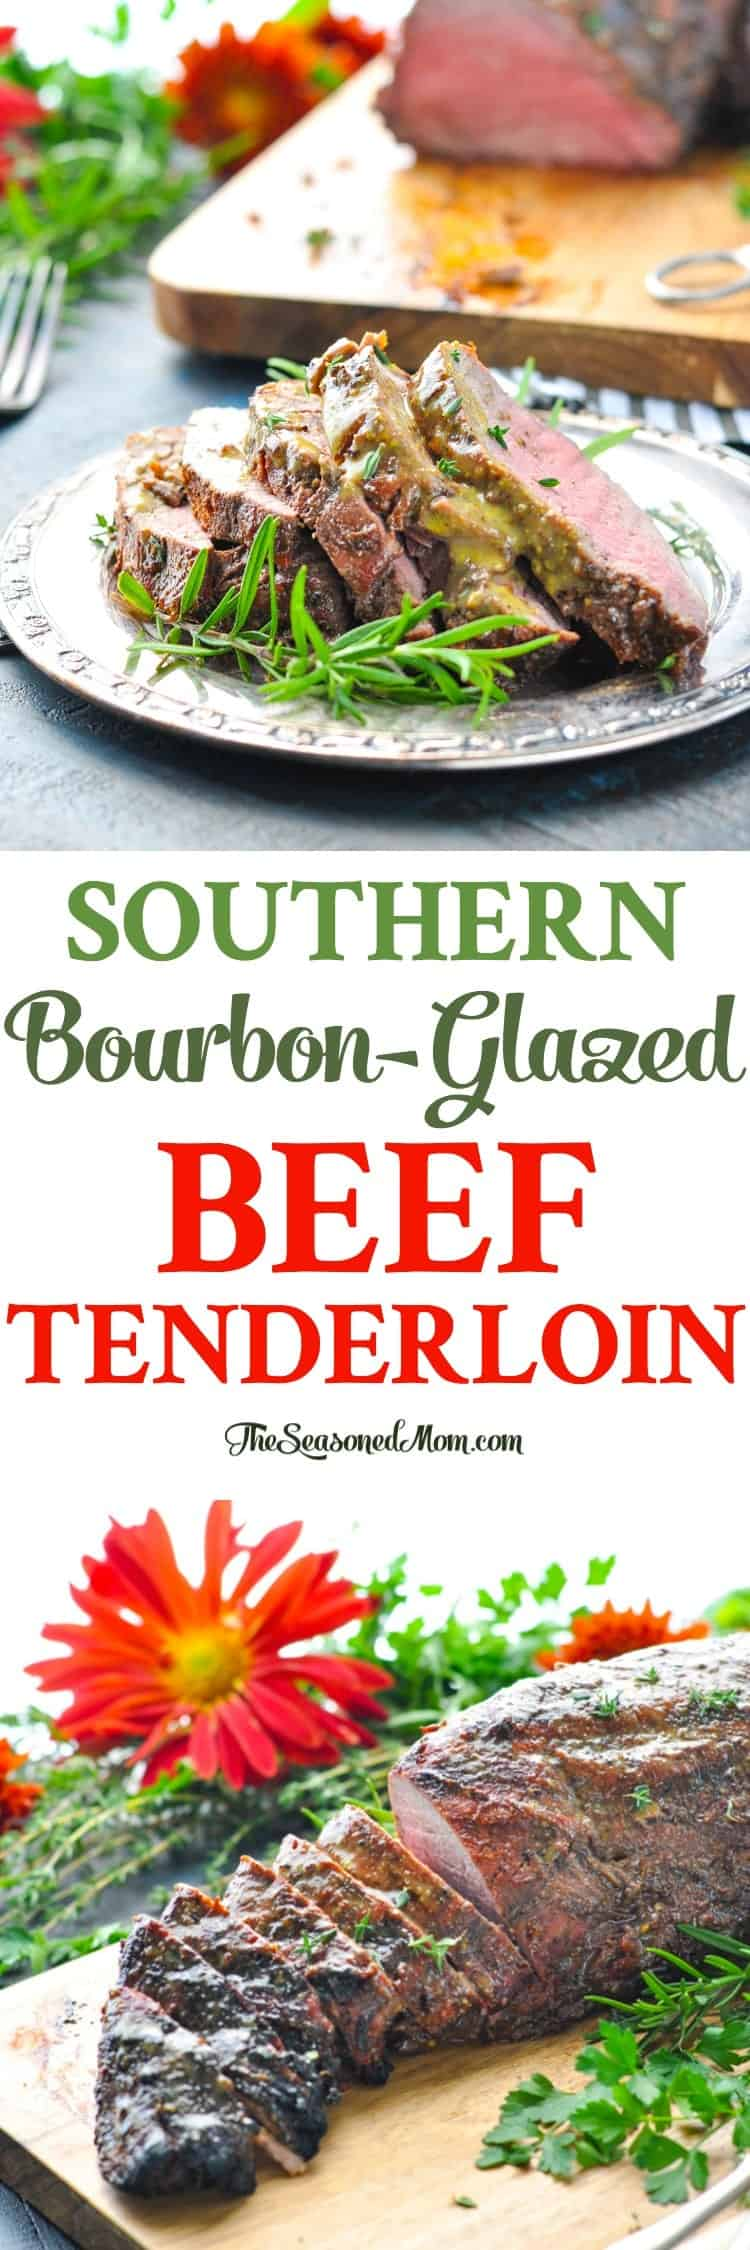 My mom's Southern Bourbon-Glazed Beef Tenderloin Recipe is a simple, easy dinner that just looks fancy! Beef Recipes | Christmas Recipes | Grilling Recipes | Dinner Ideas #beef #christmas #grilling #dinner